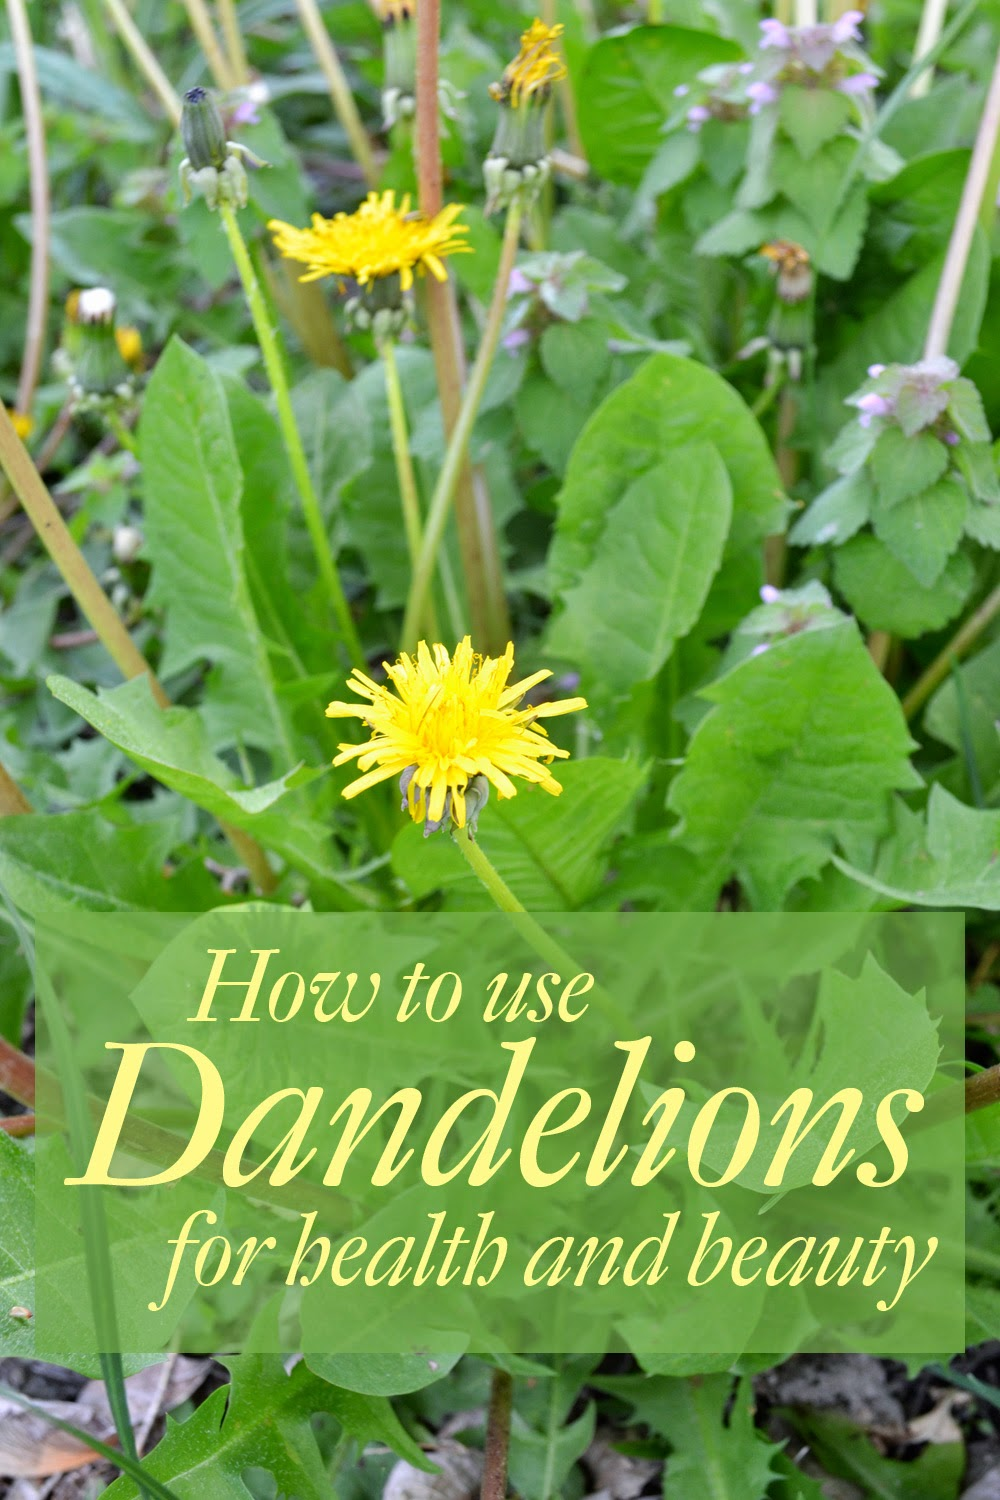 How to use Dandelions for health and beauty - harvest dandelion leaf and root for health